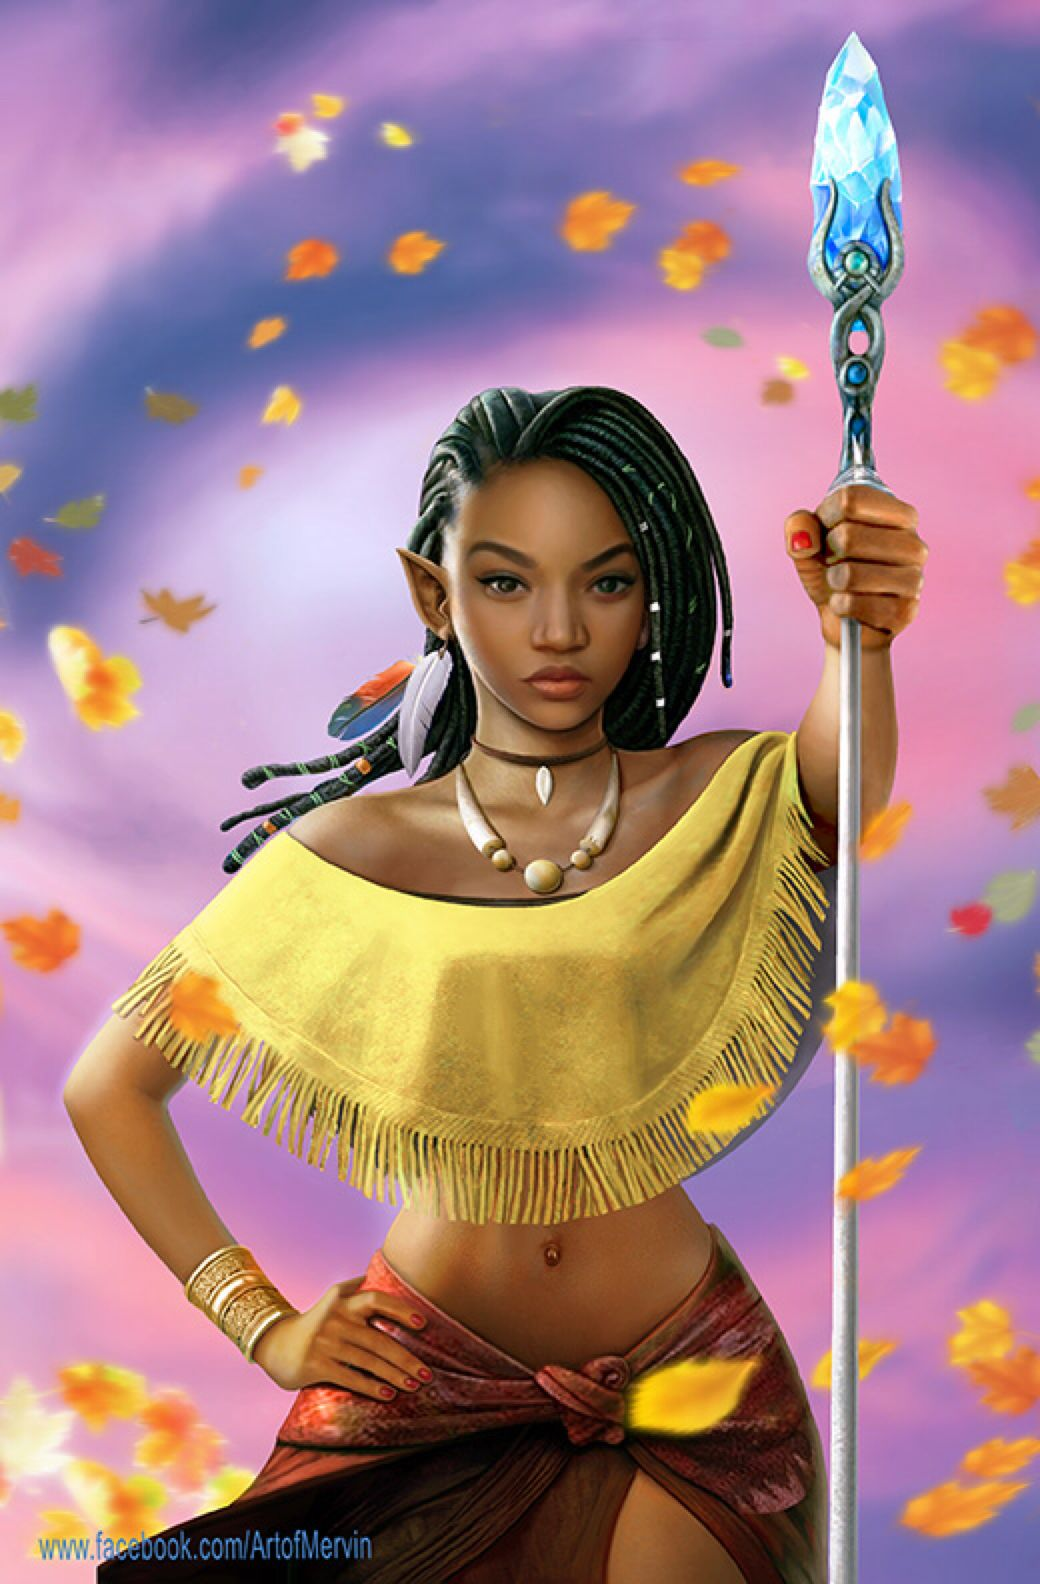 Niobe By Jjwinters On Deviantart Geeky Goodness Female